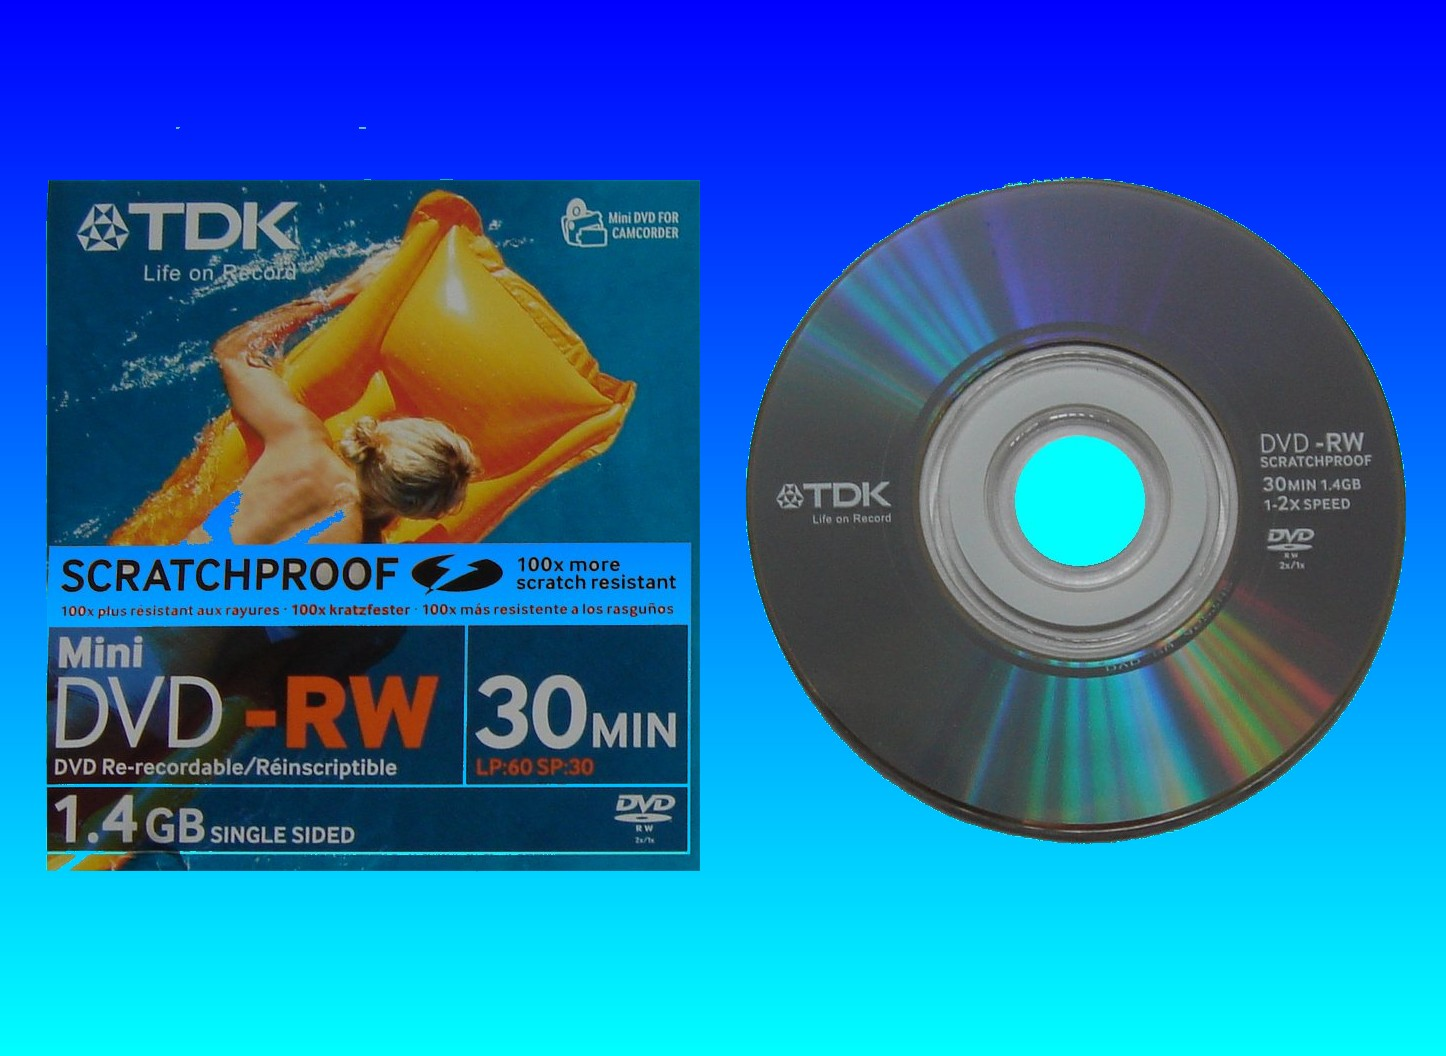 A TDK DVD-RW that lost all its previously recorded video after a message was displayed on the camcorder to repair disc and reset device.